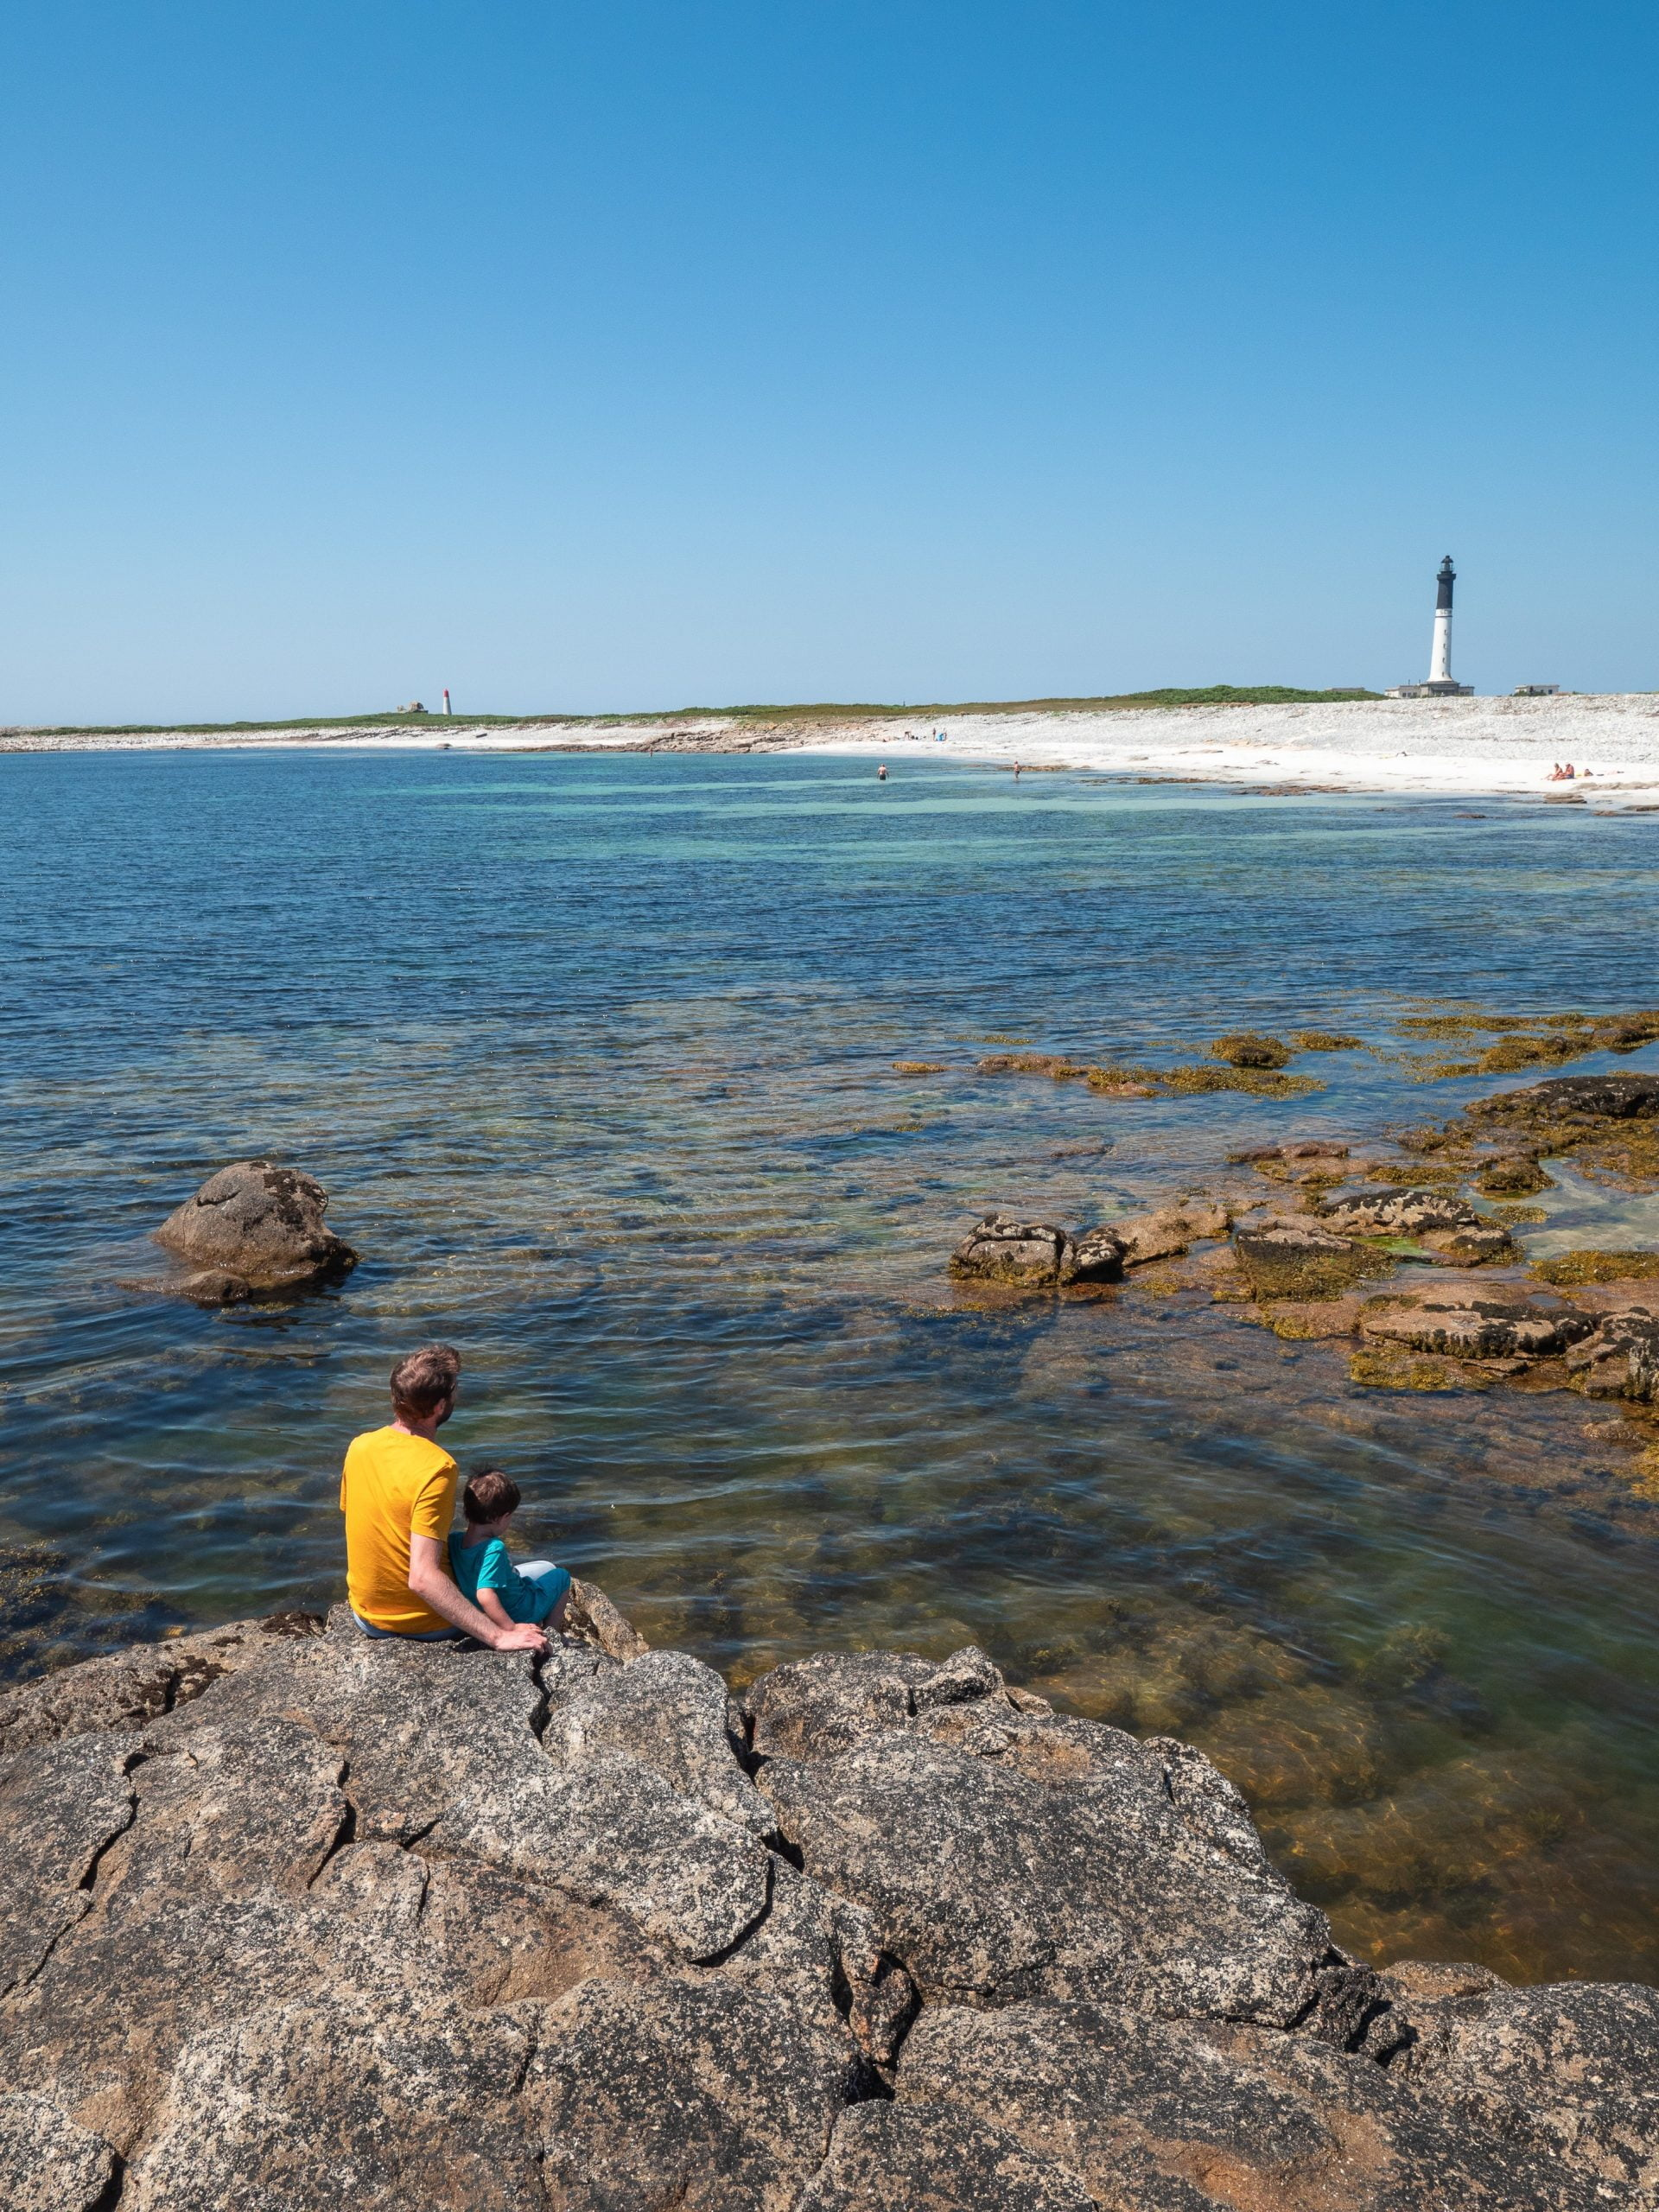 Sein plage phare scaled - Les globe blogueurs - blog voyage nature